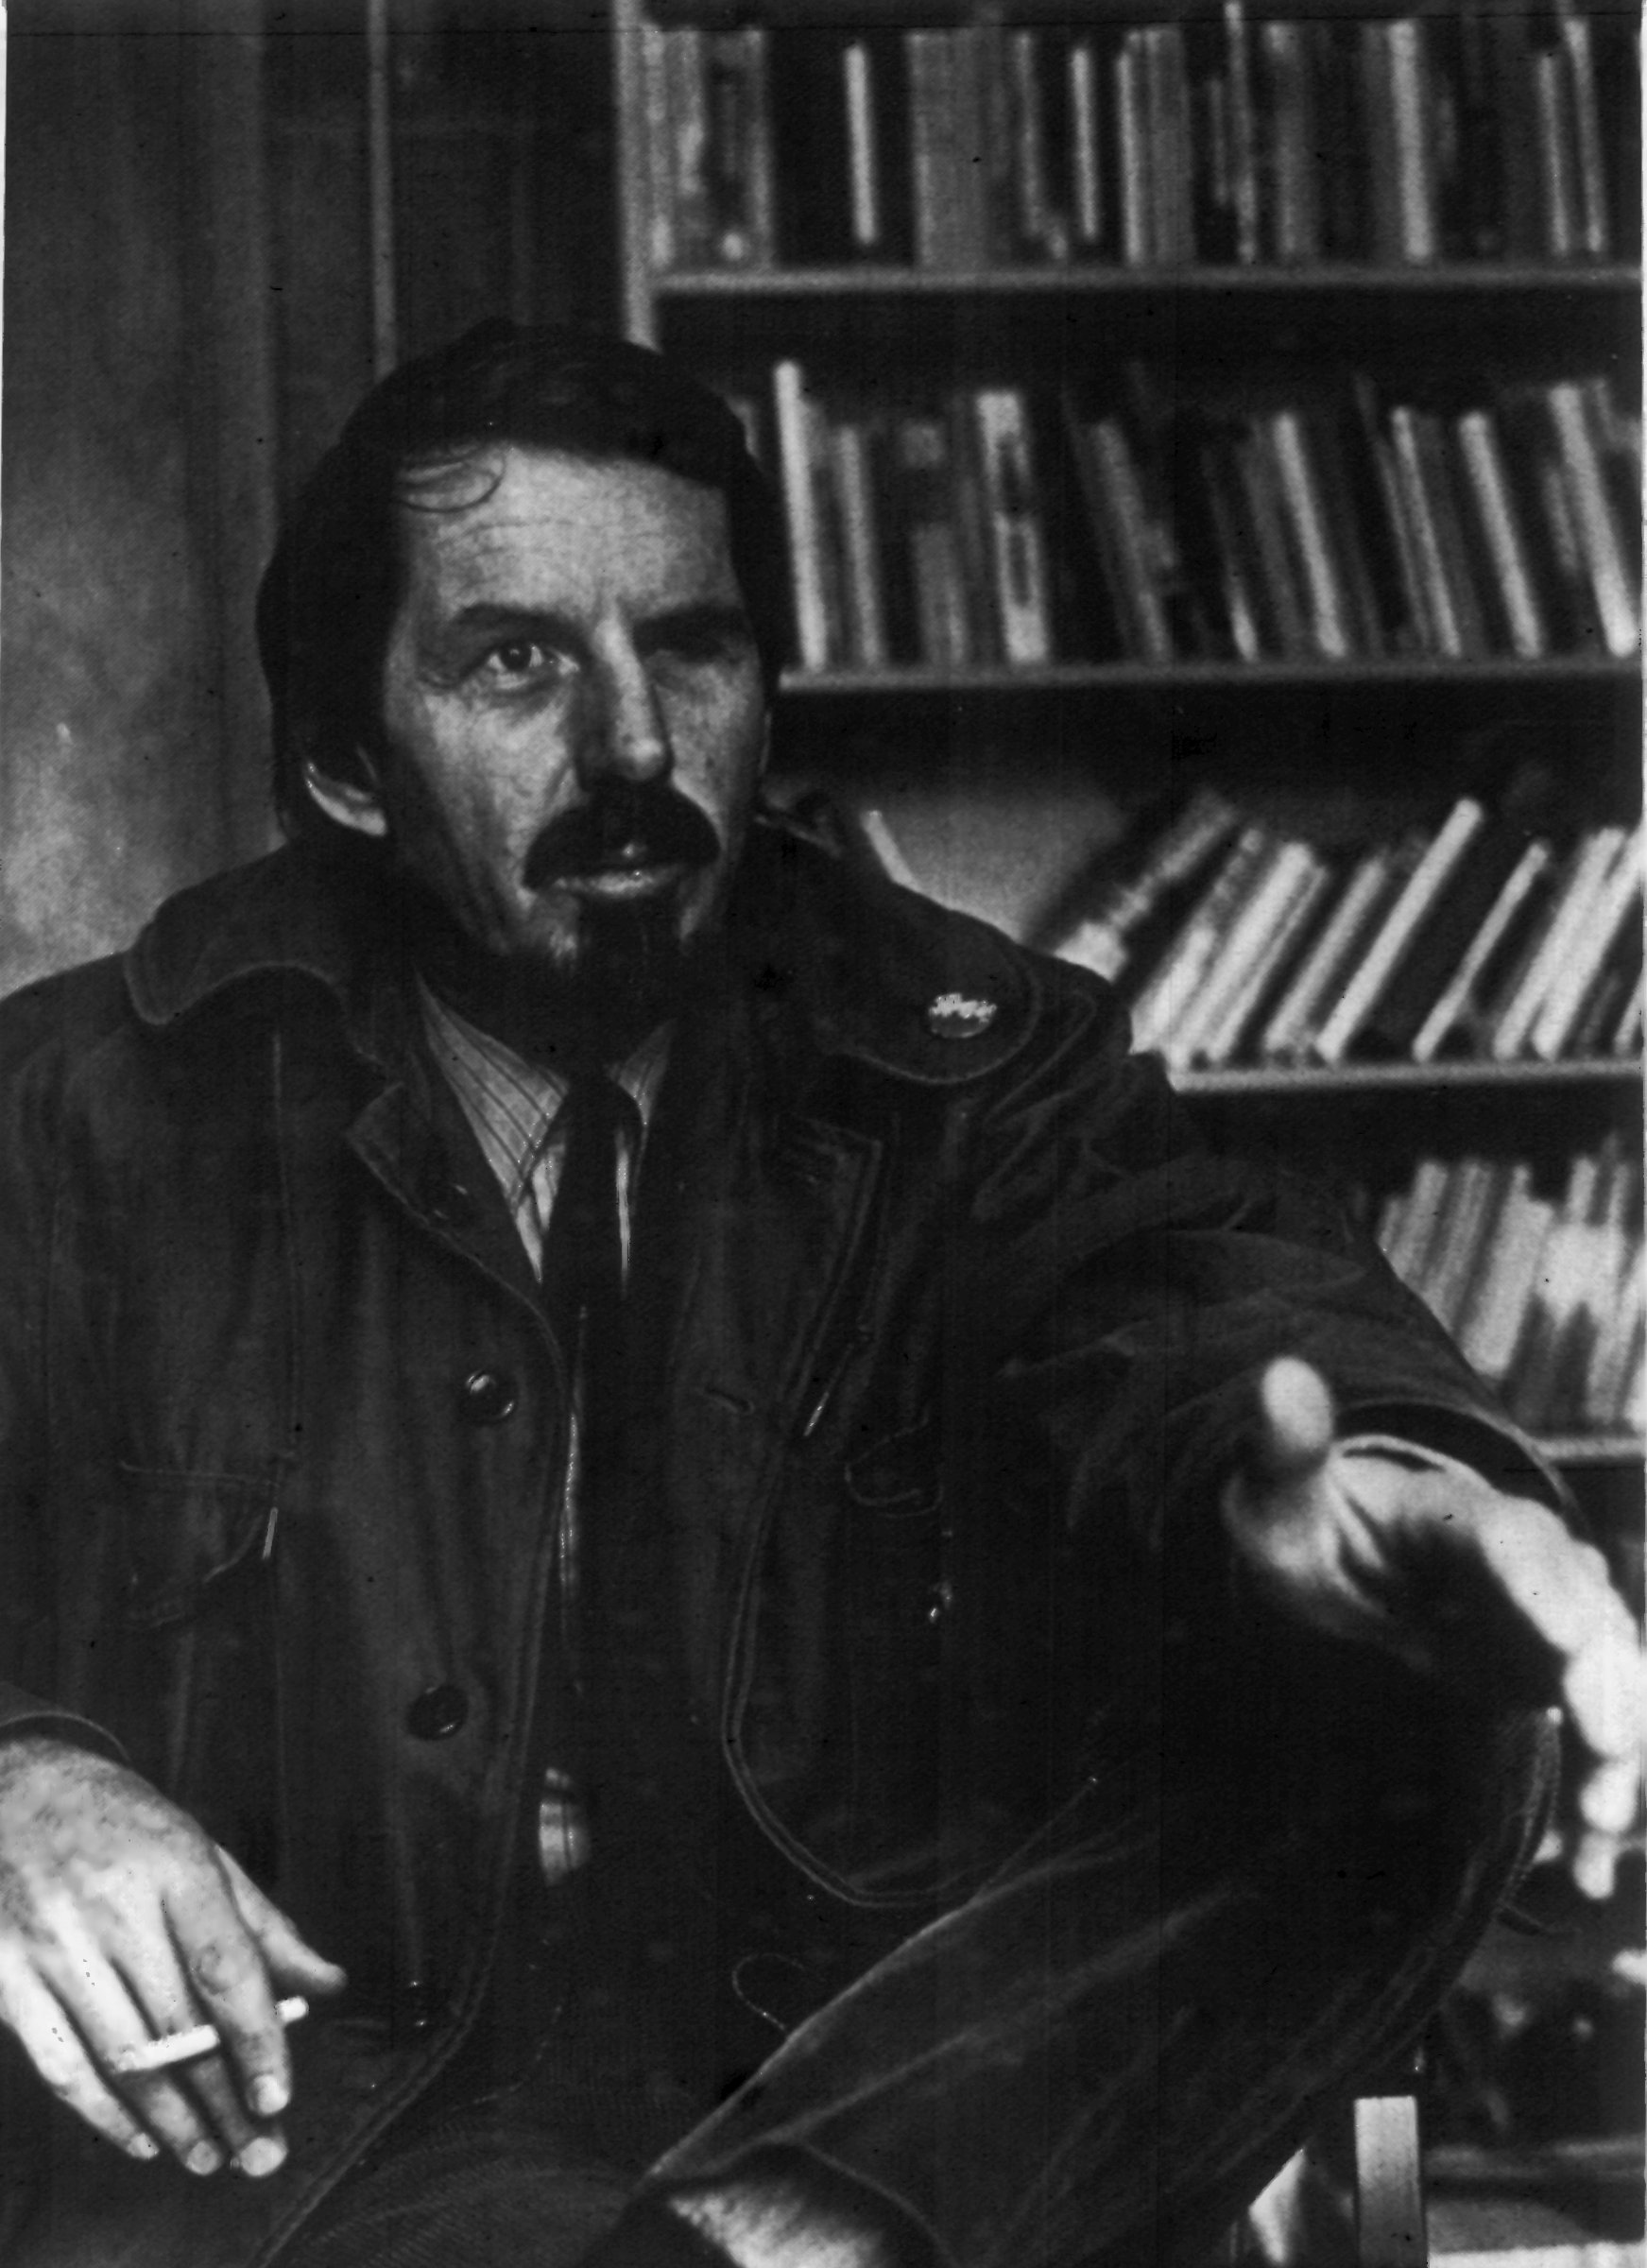 robert creeley collected essays Creeley quotes olson in his essay poems are a complex, (creeley, collected essays, 490): that which exists through itself is what is called meaning creeley adds poems are not referential, or at least not importantly so.